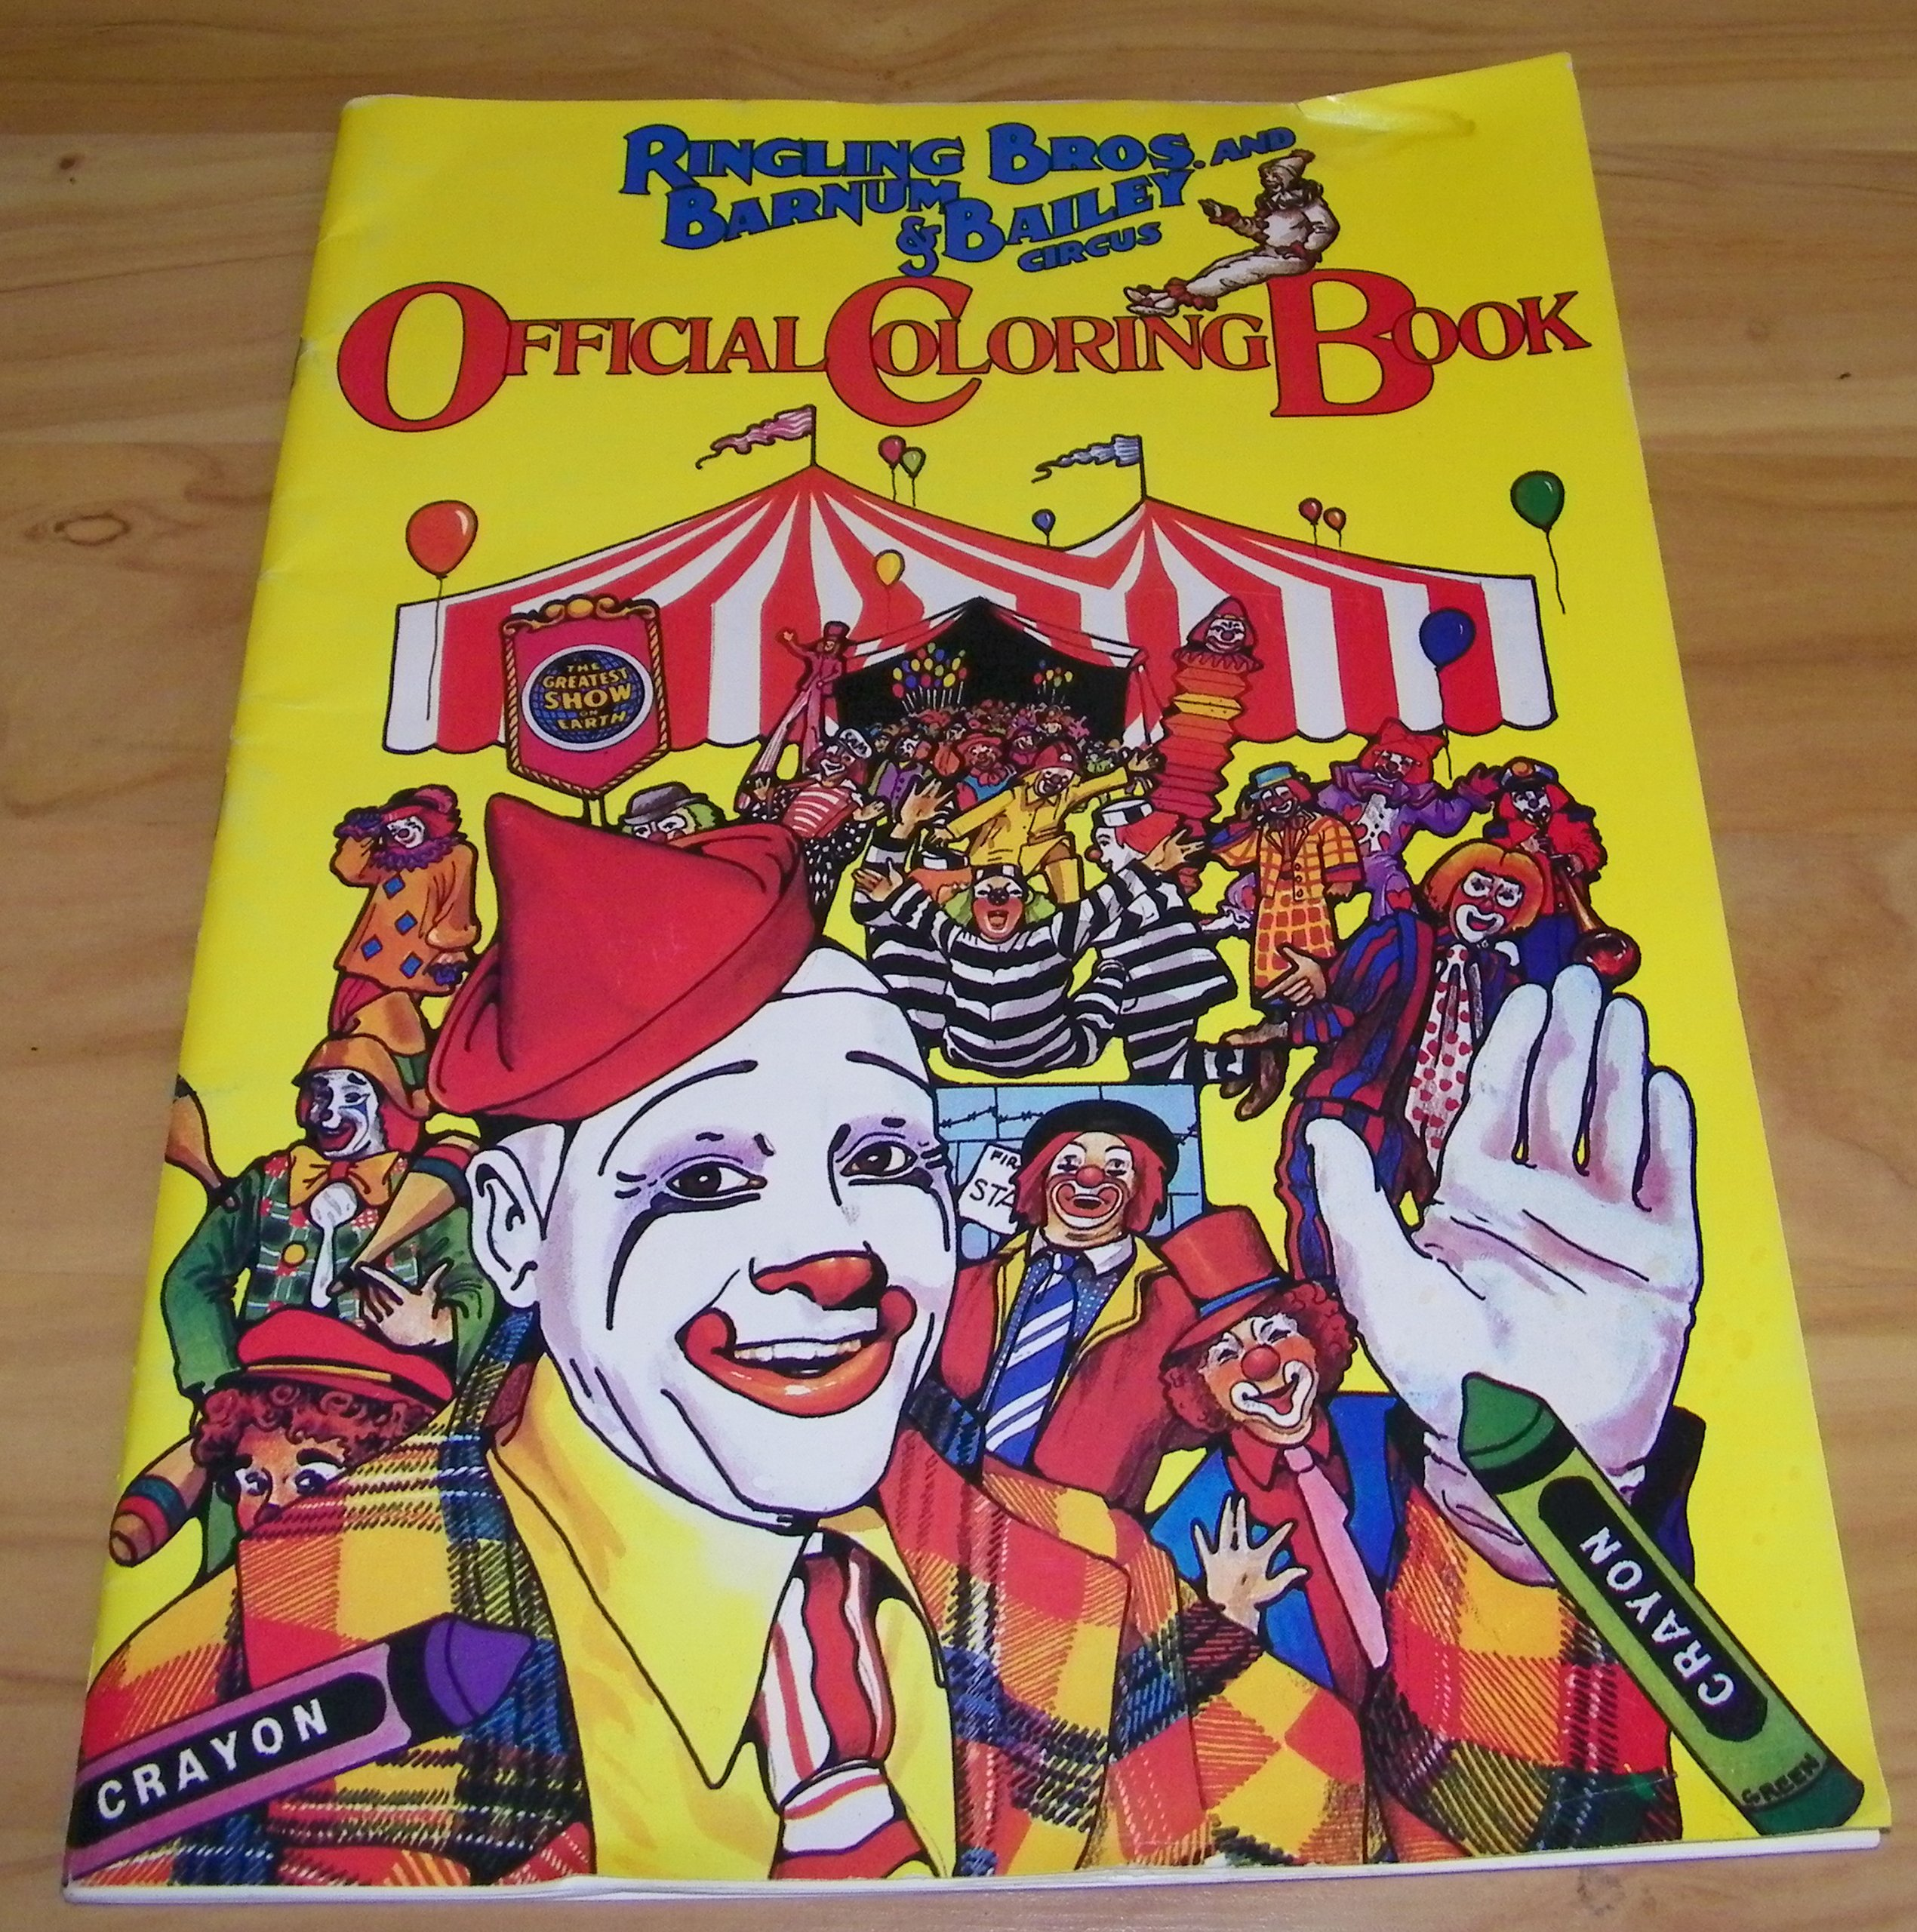 And Barnum & Bailey Circus Official Coloring Book (irvin Feld & Kenneth  Feld): Irvin Feld, Kenneth Feld: Amazon: Books